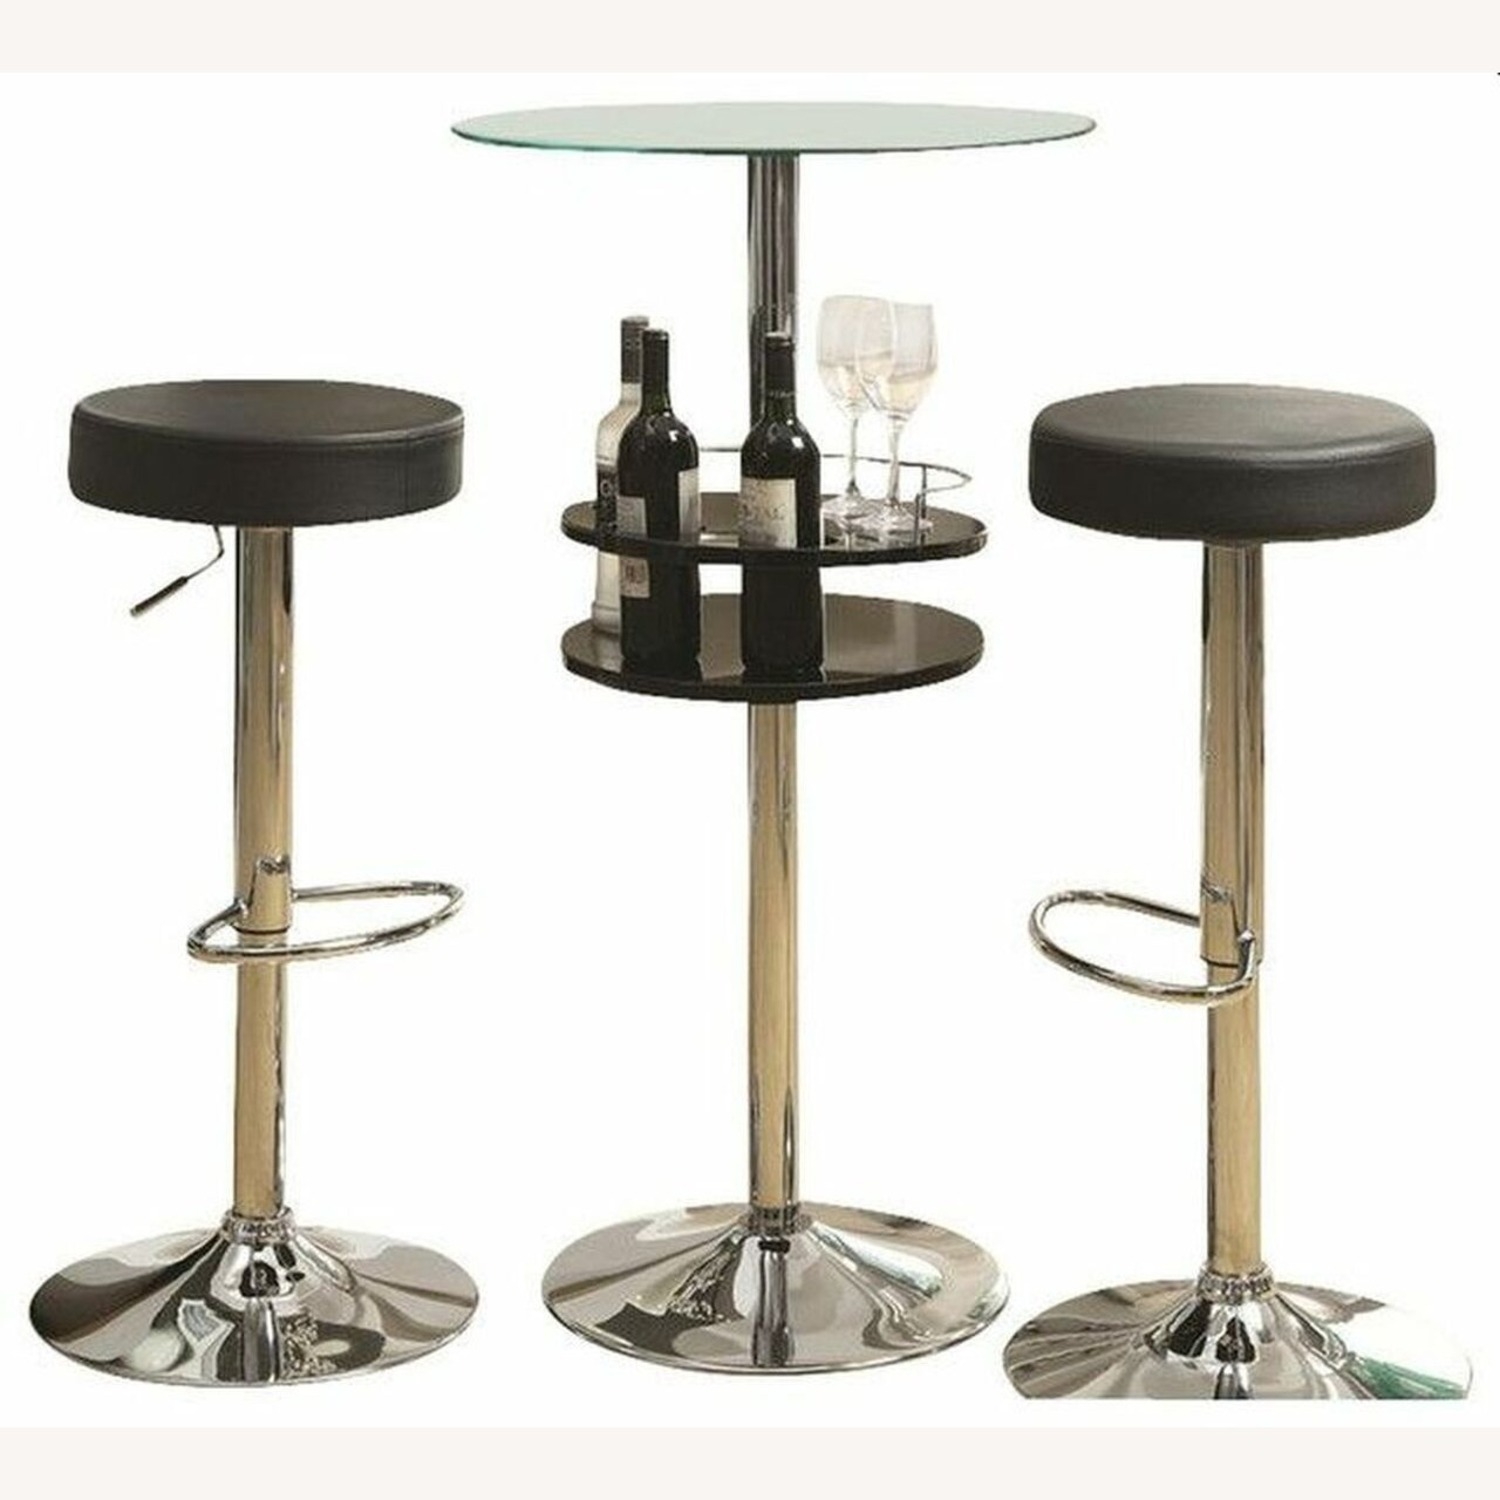 Bar Table In Glossy Black W/ Tall Pedestal Base - image-1